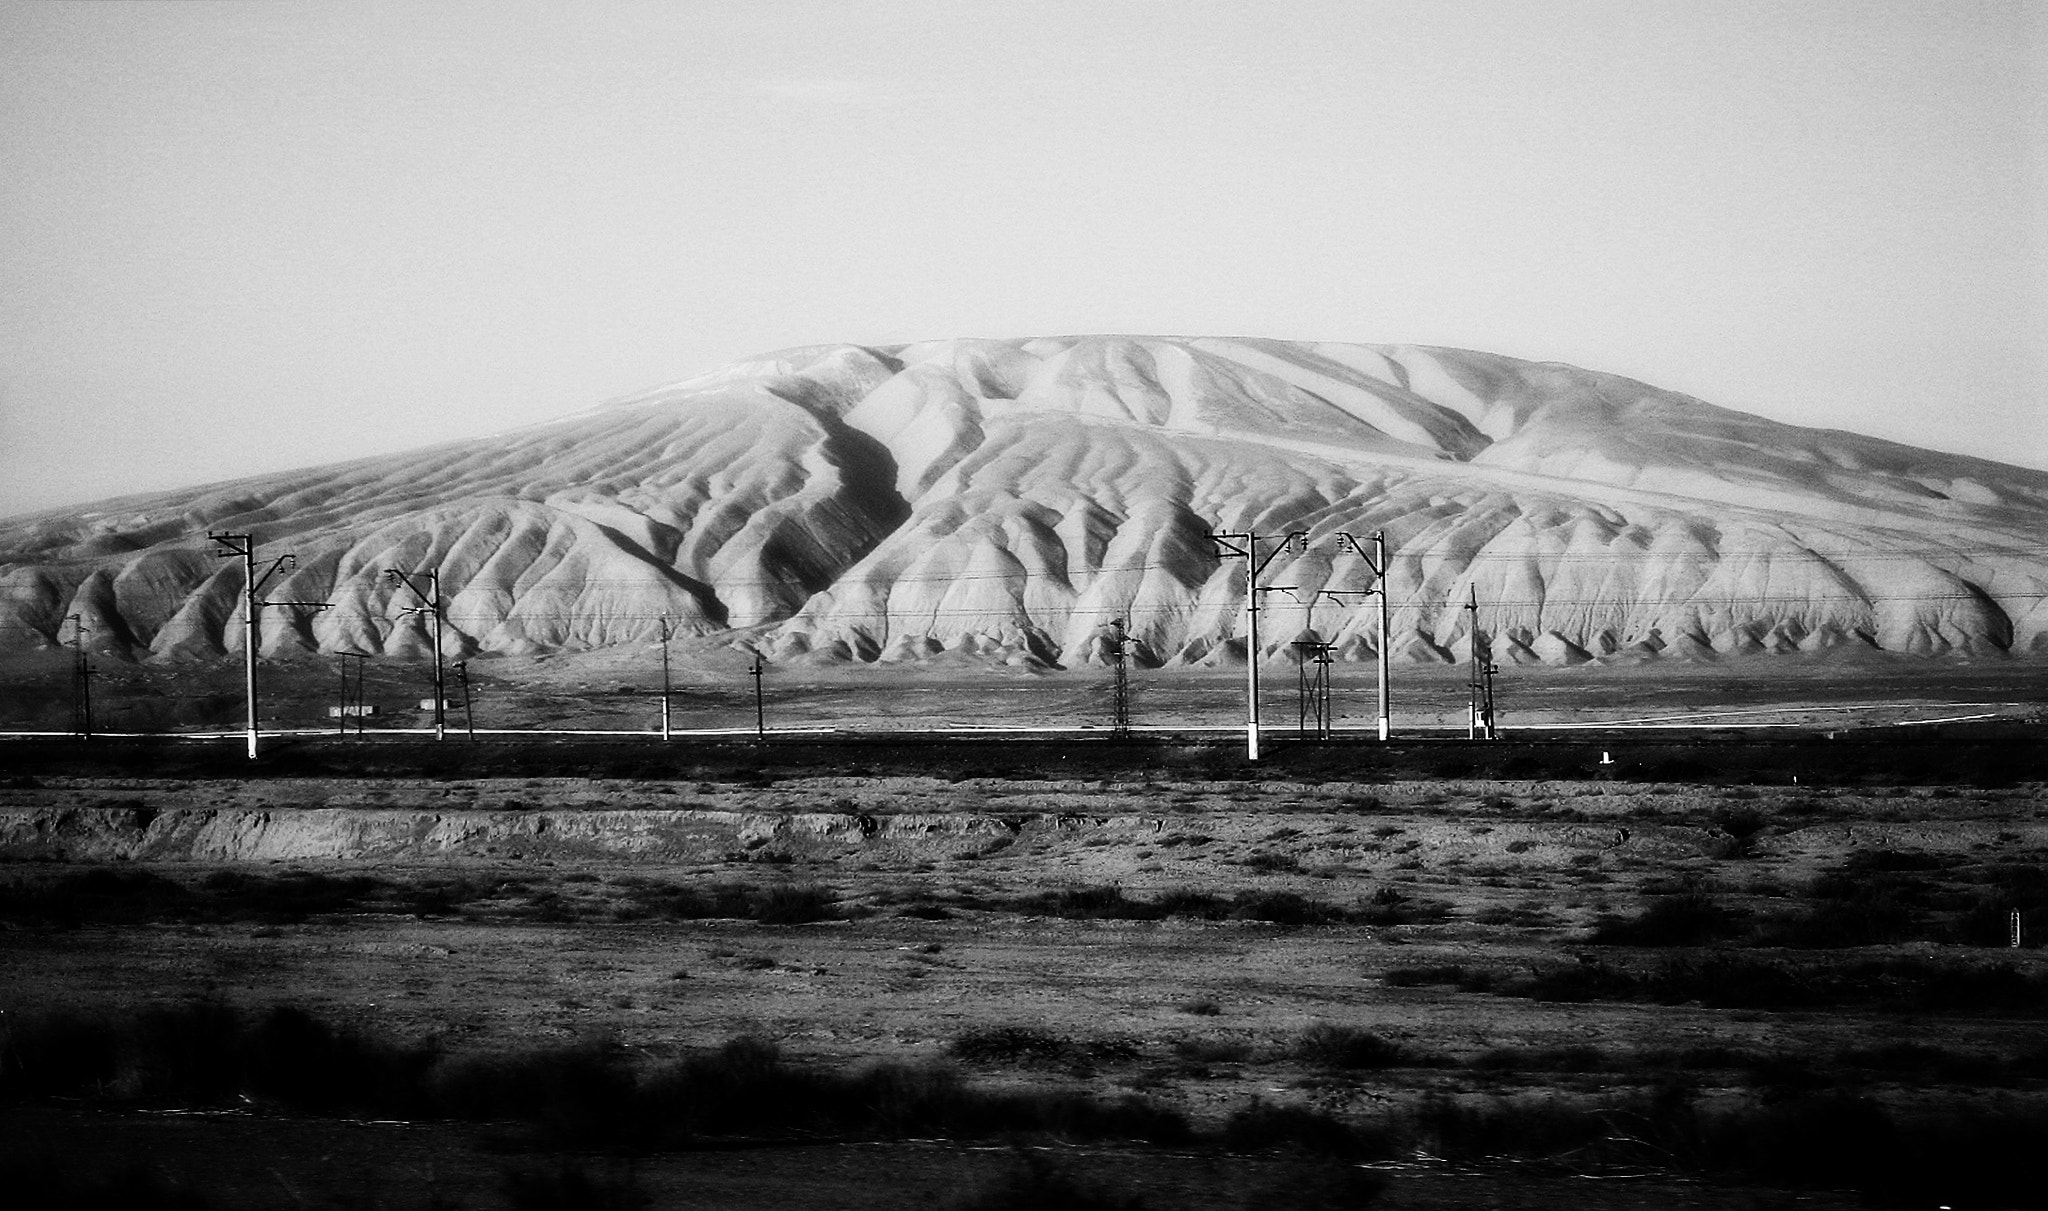 Photograph 60 km far from Baku by PhotoPalette  on 500px